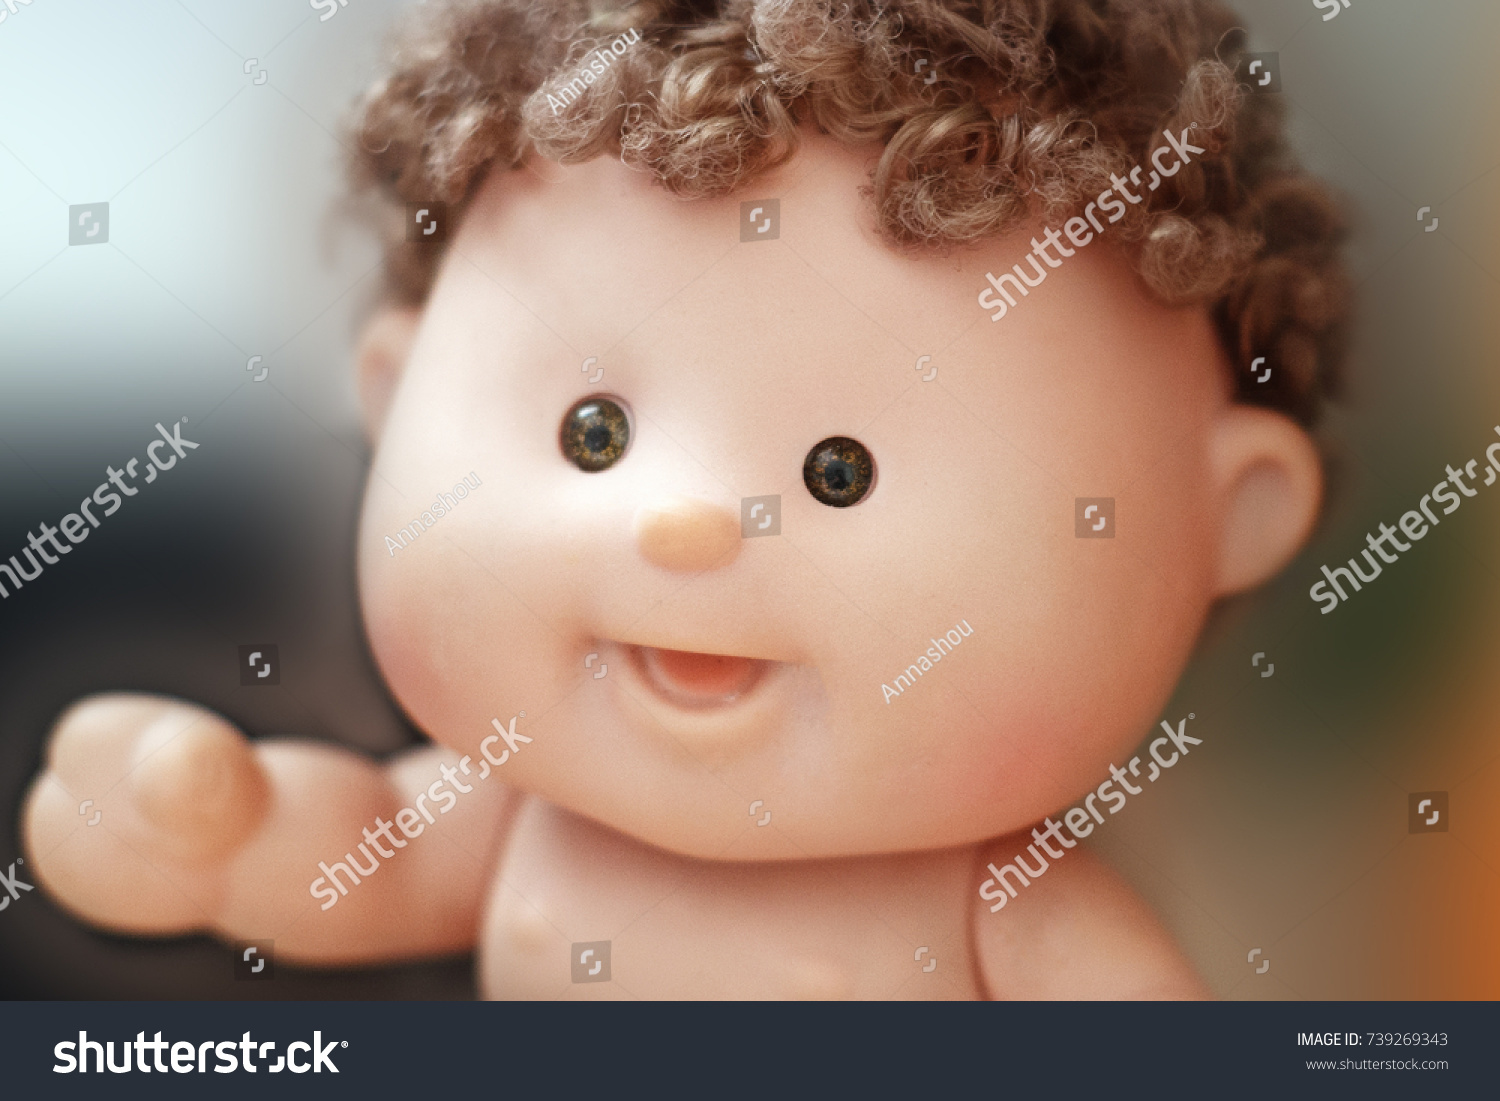 Cute baby doll with small curls and fat cheeks